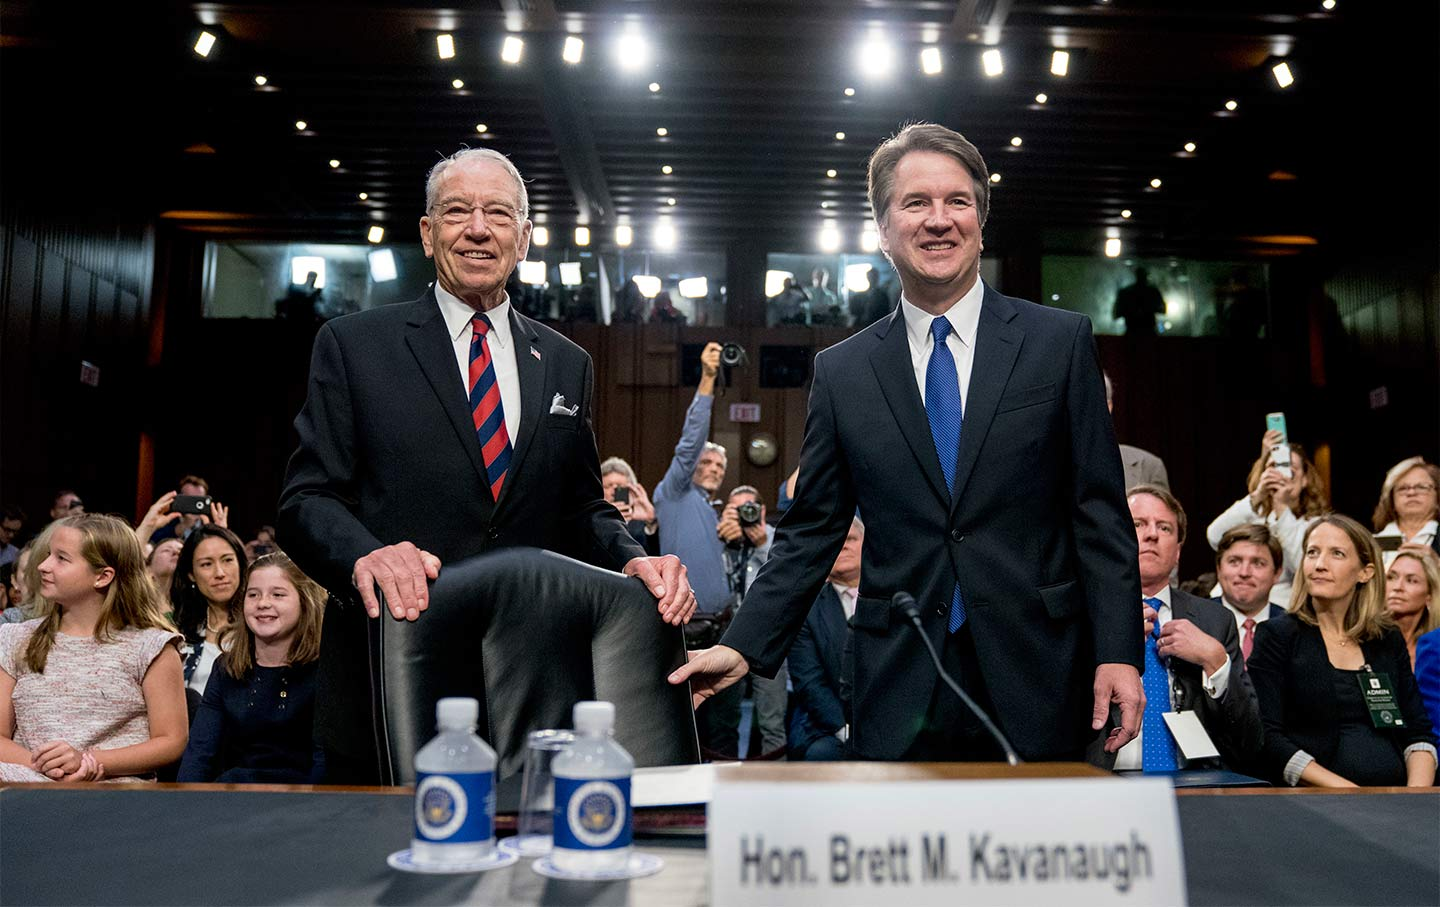 Grassley and Kavanaugh first day of hearing